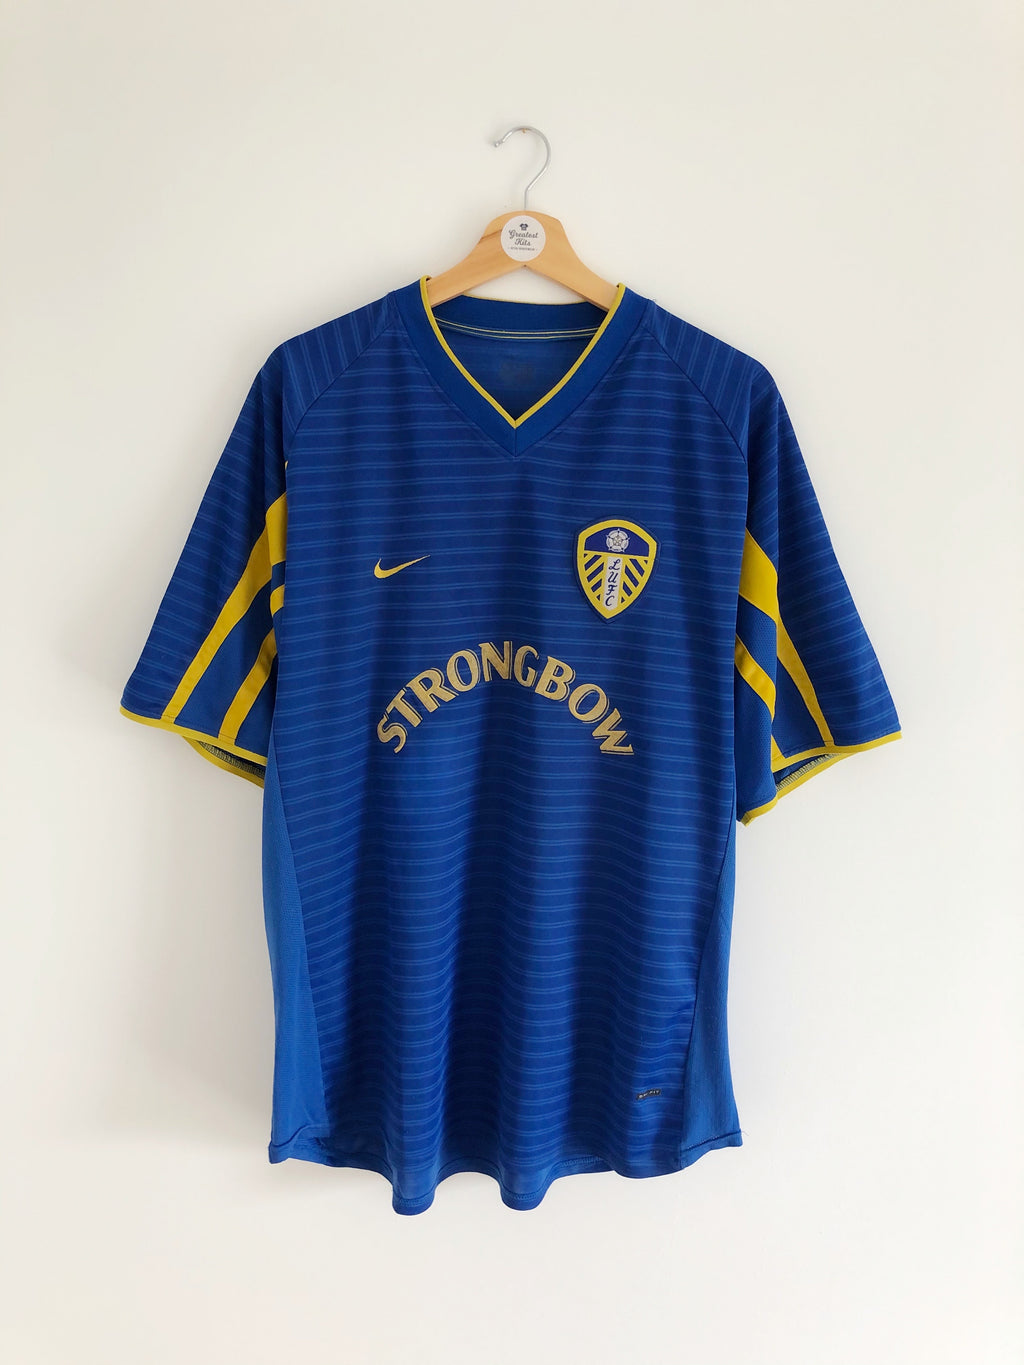 2001/03 Leeds United Away Shirt (XL) 8/10